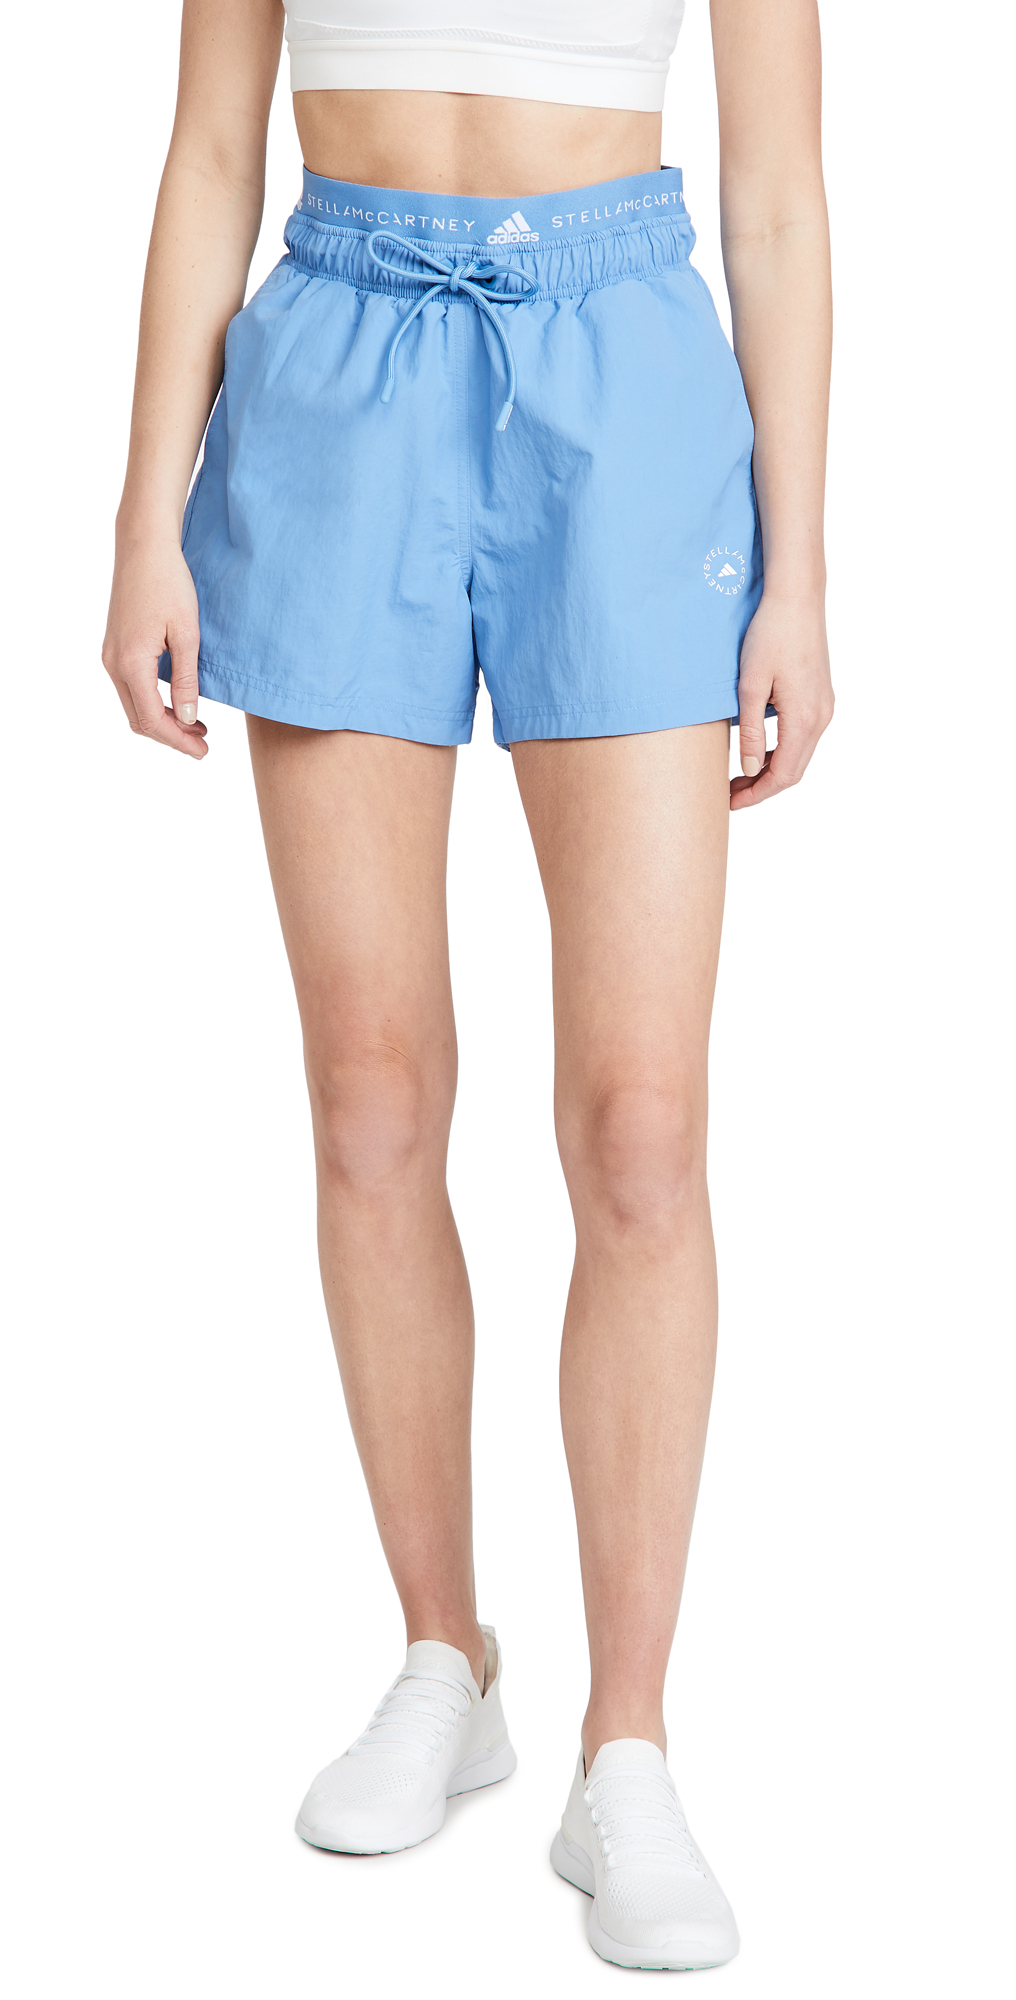 adidas by Stella McCartney Asmc Shorts